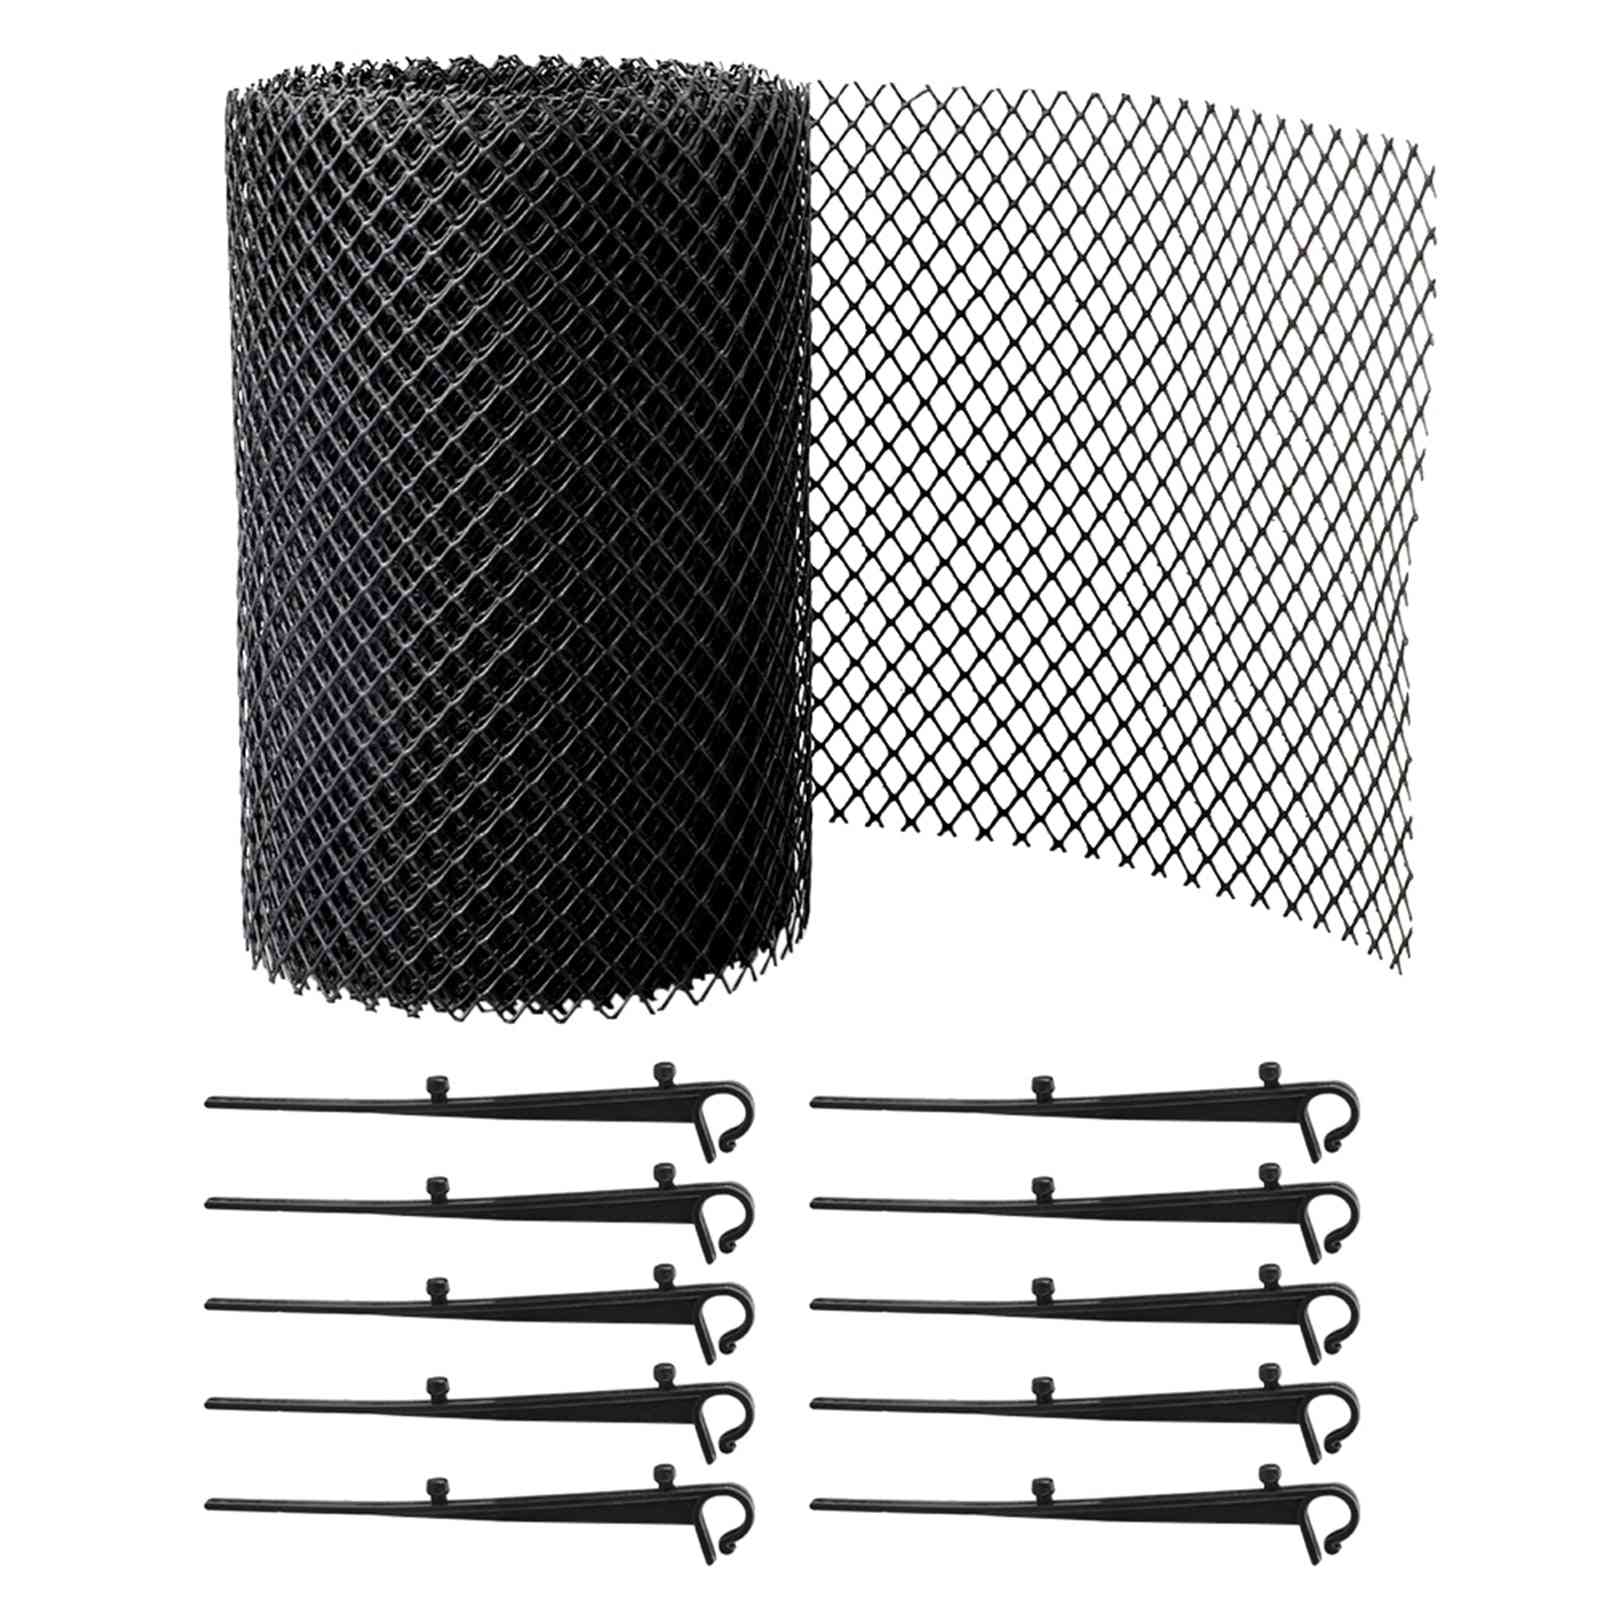 Gutter Guard Reduce Overflow Mesh Cover Floor Outdoor Balcony Drain Easy Install With Stakes Anti Clogging Stops Leaves Flexible